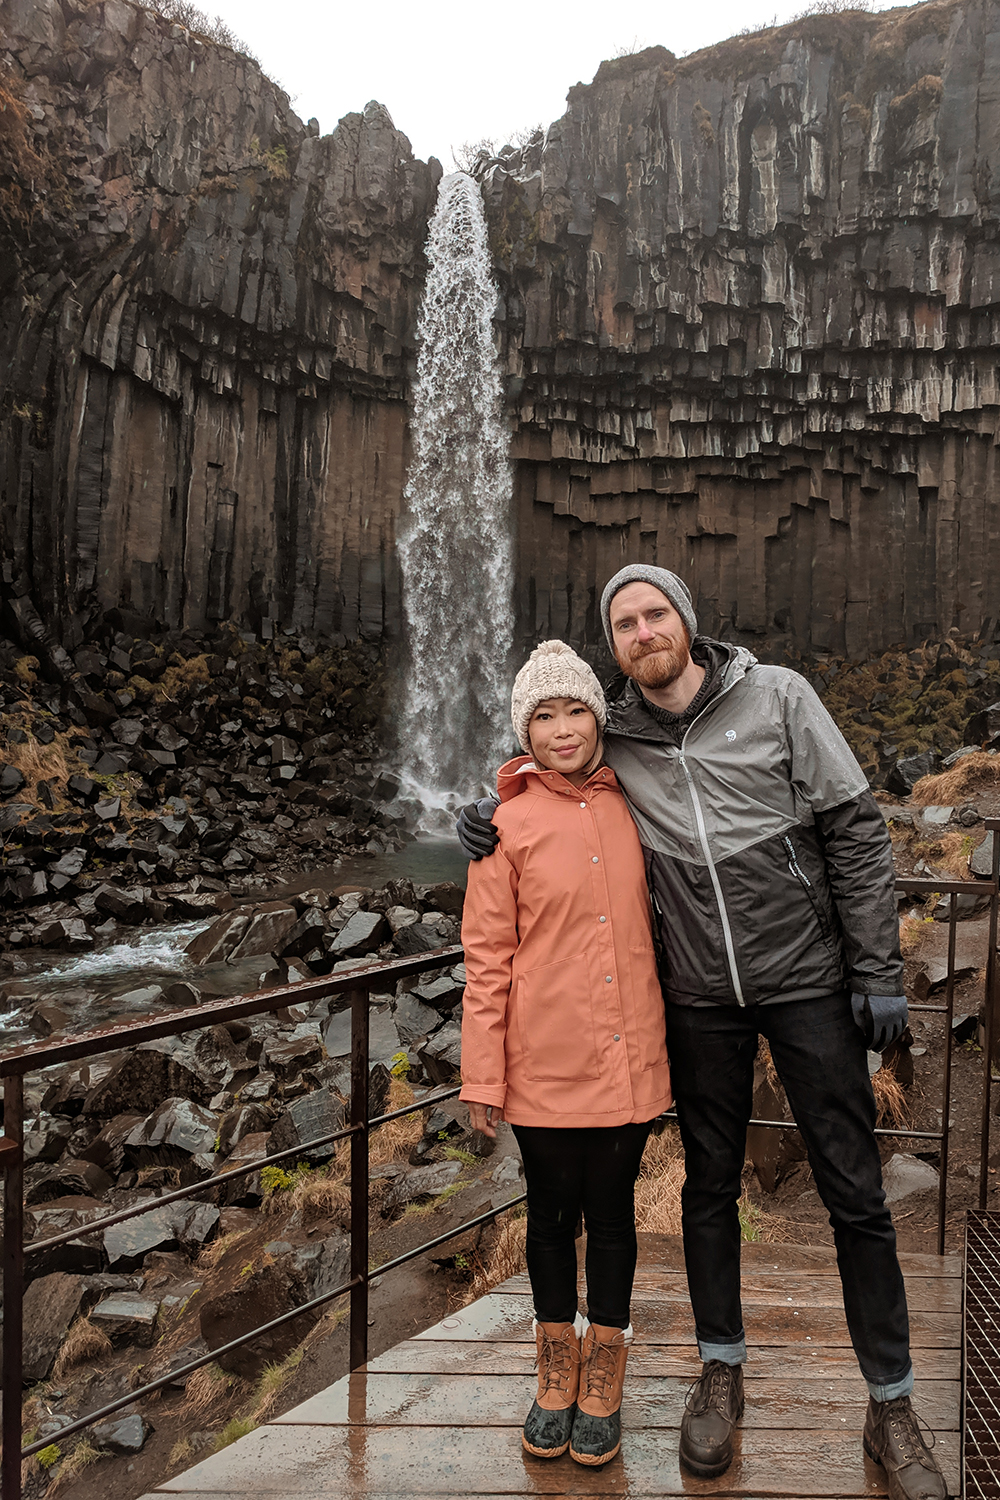 07iceland-svartifoss-skaftafell-waterfall-travel-couple-love